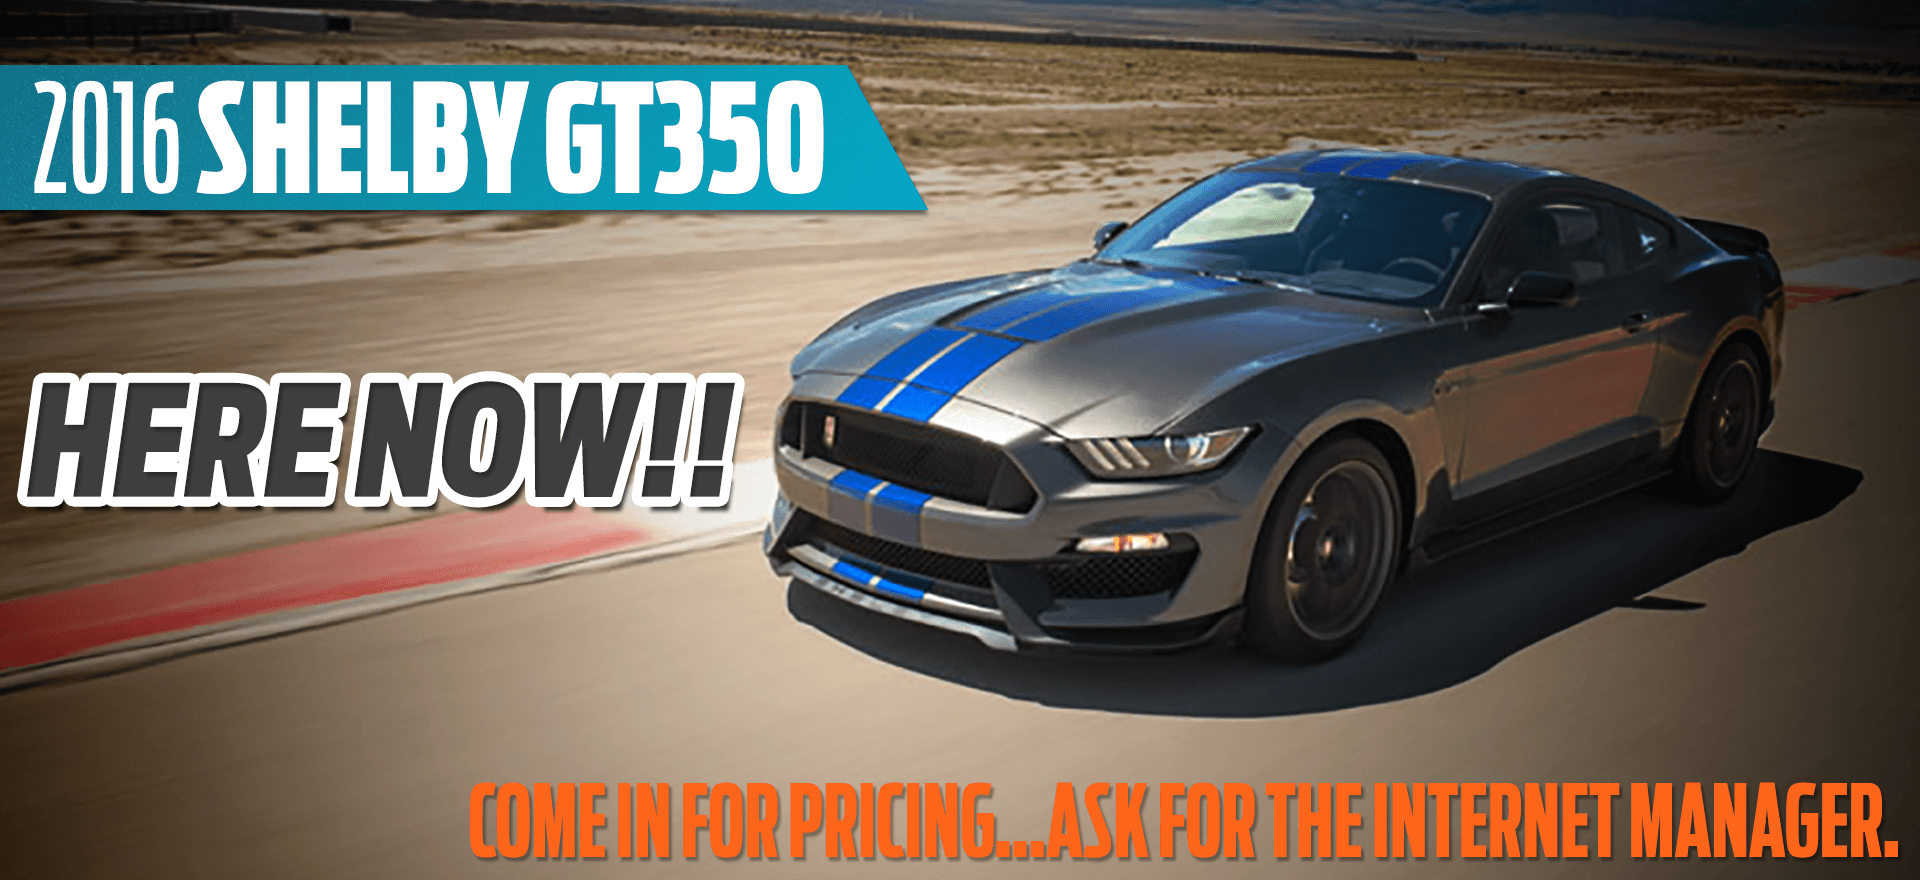 GT 350 Here Now!